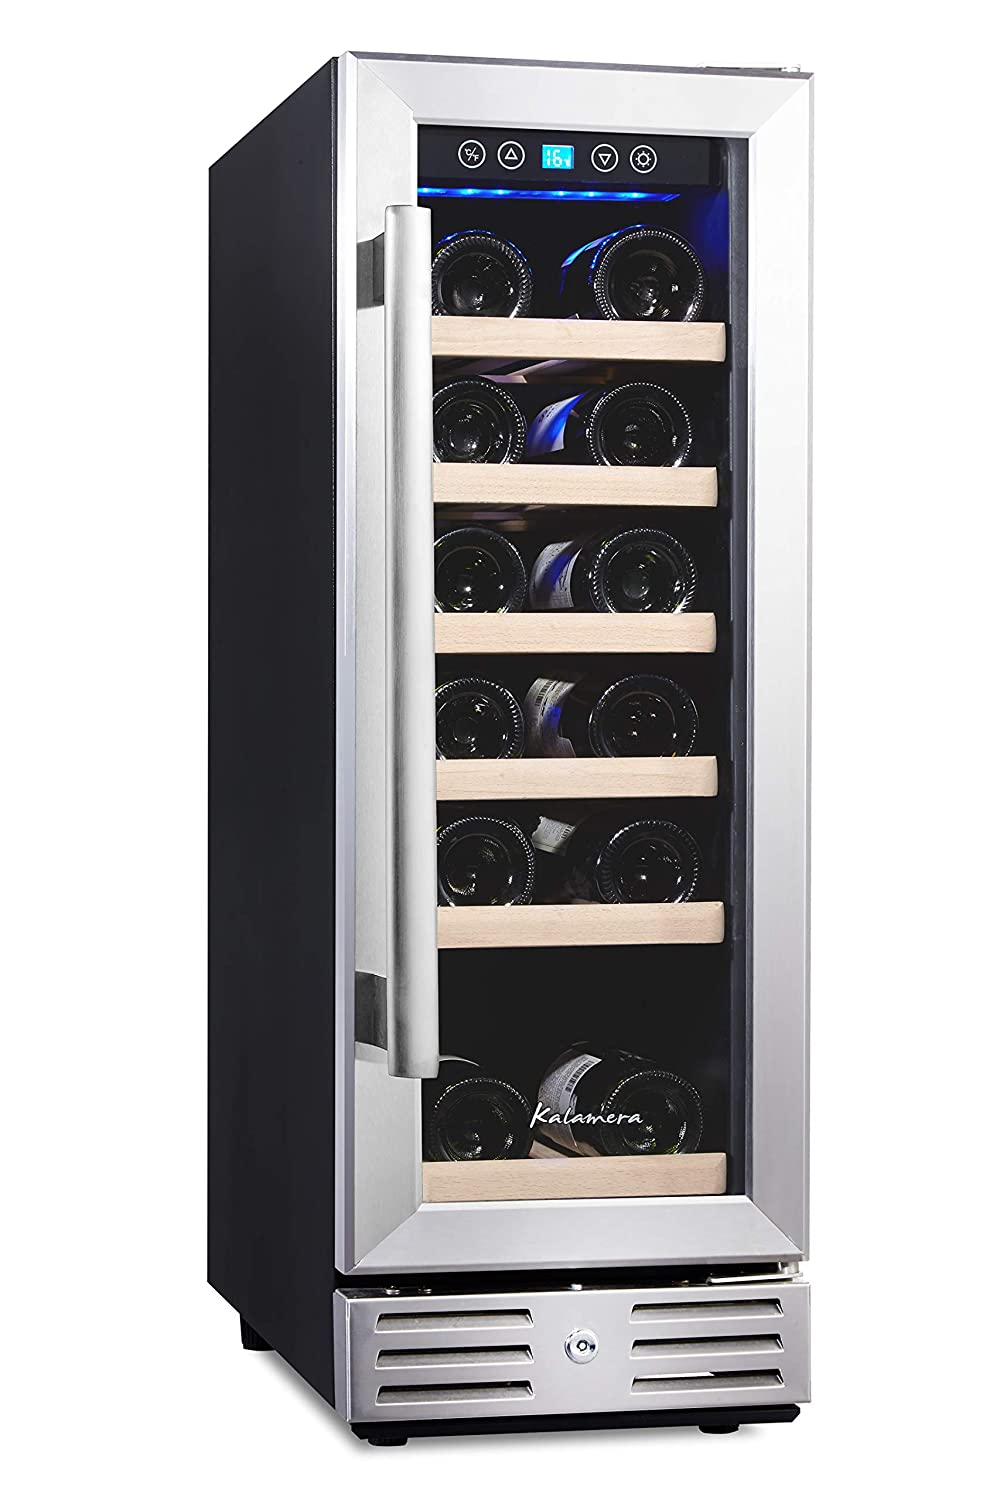 Kalamera 12'' Wine Cooler 18 Bottle Built-in or Freestanding with Stainless Steel & Double-Layer Tempered Glass Door and Temperature Memory Function